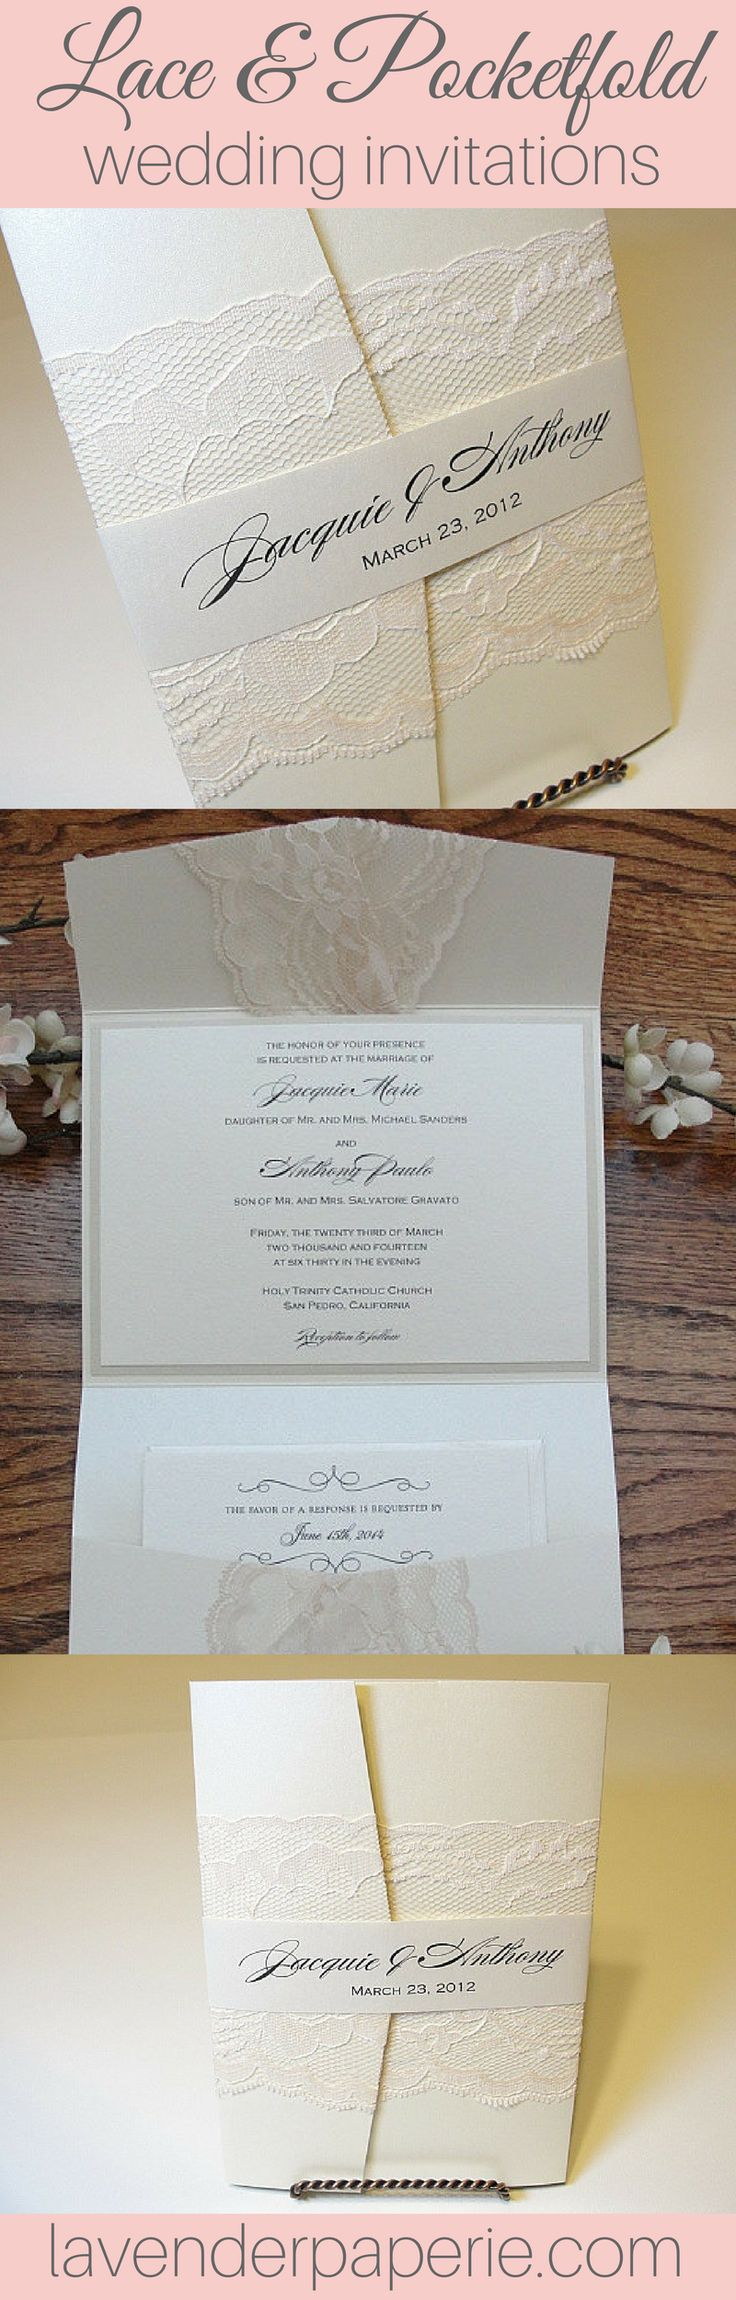 lace wedding invitation wrap%0A Amy  band horizontal  Pocketfold Wedding InvitationsVintage